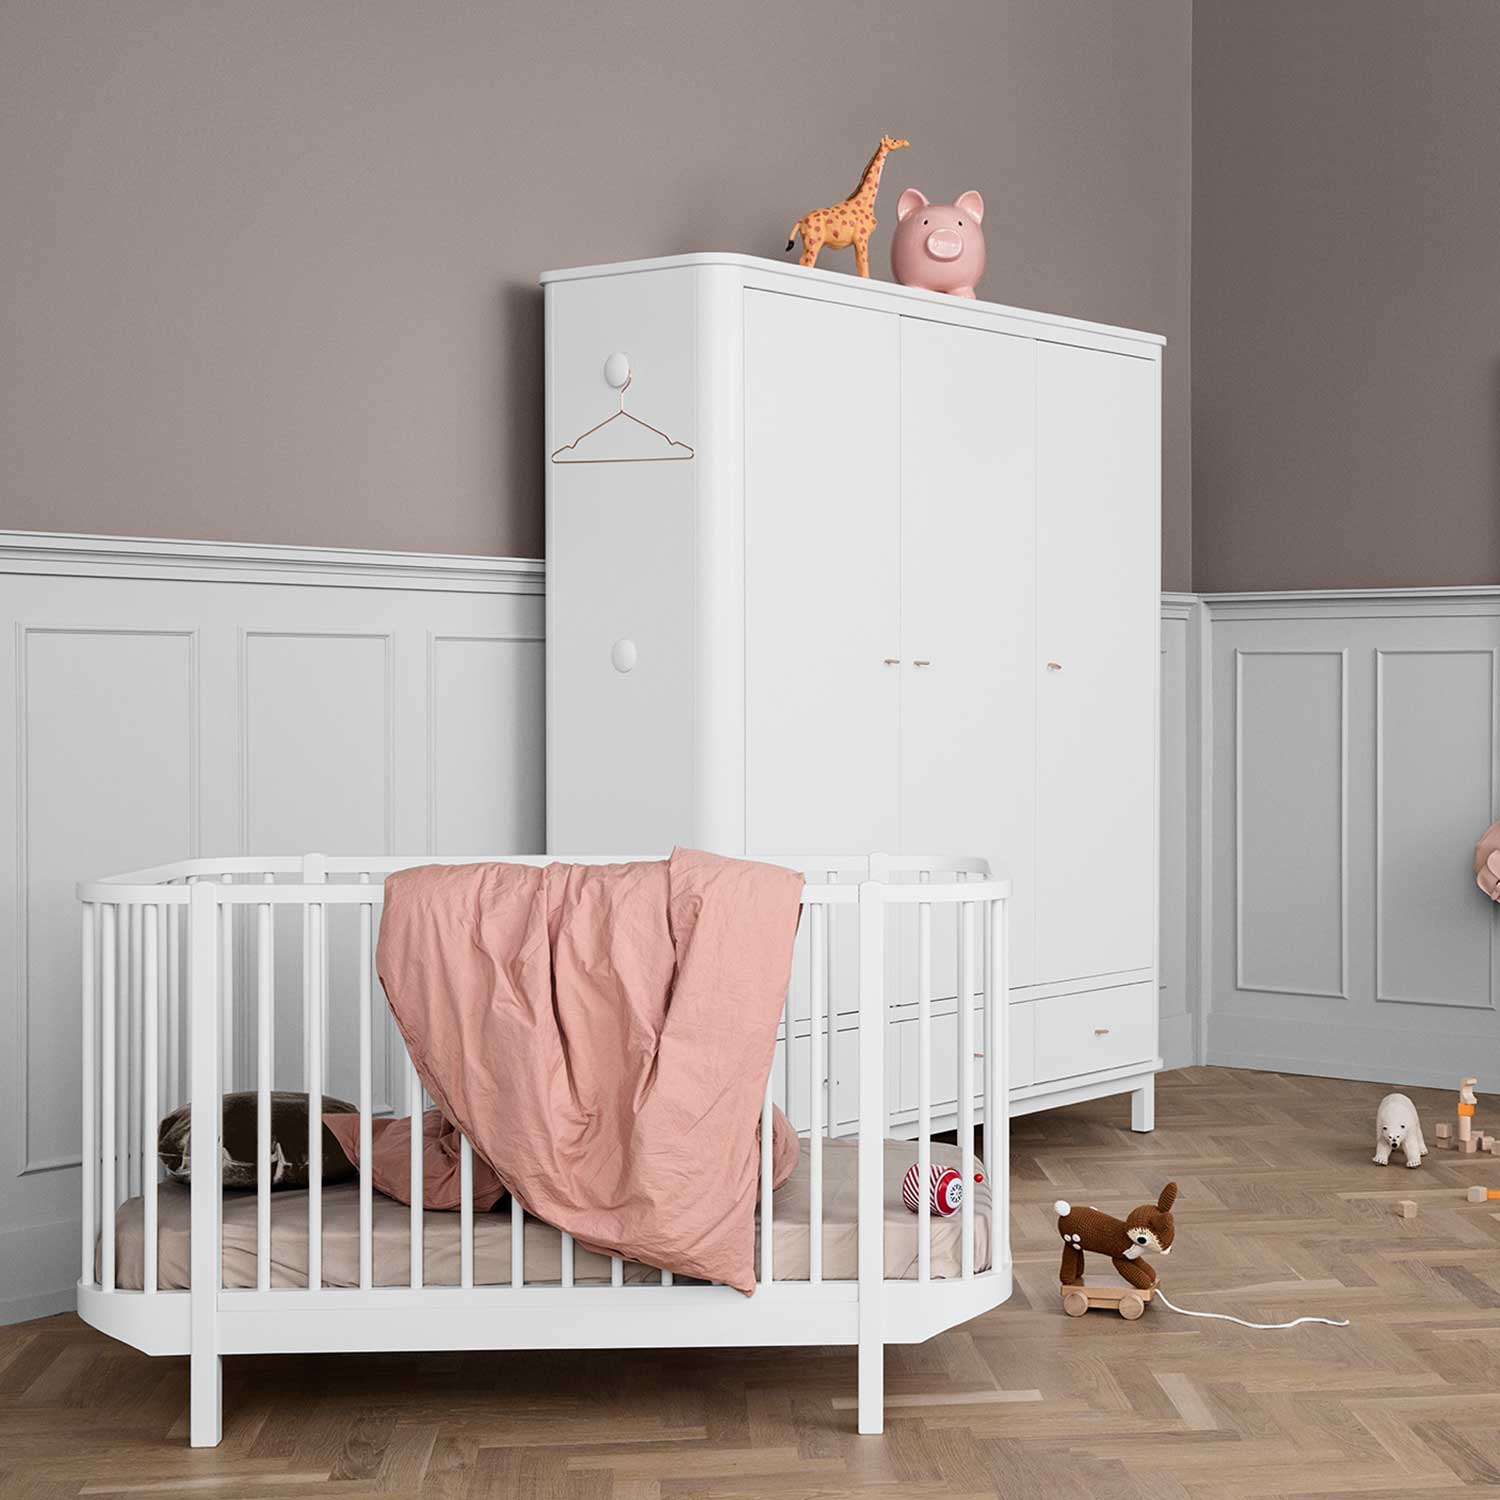 Oliver Furniture Babybett Wood Collection Weiß 70x140 cm